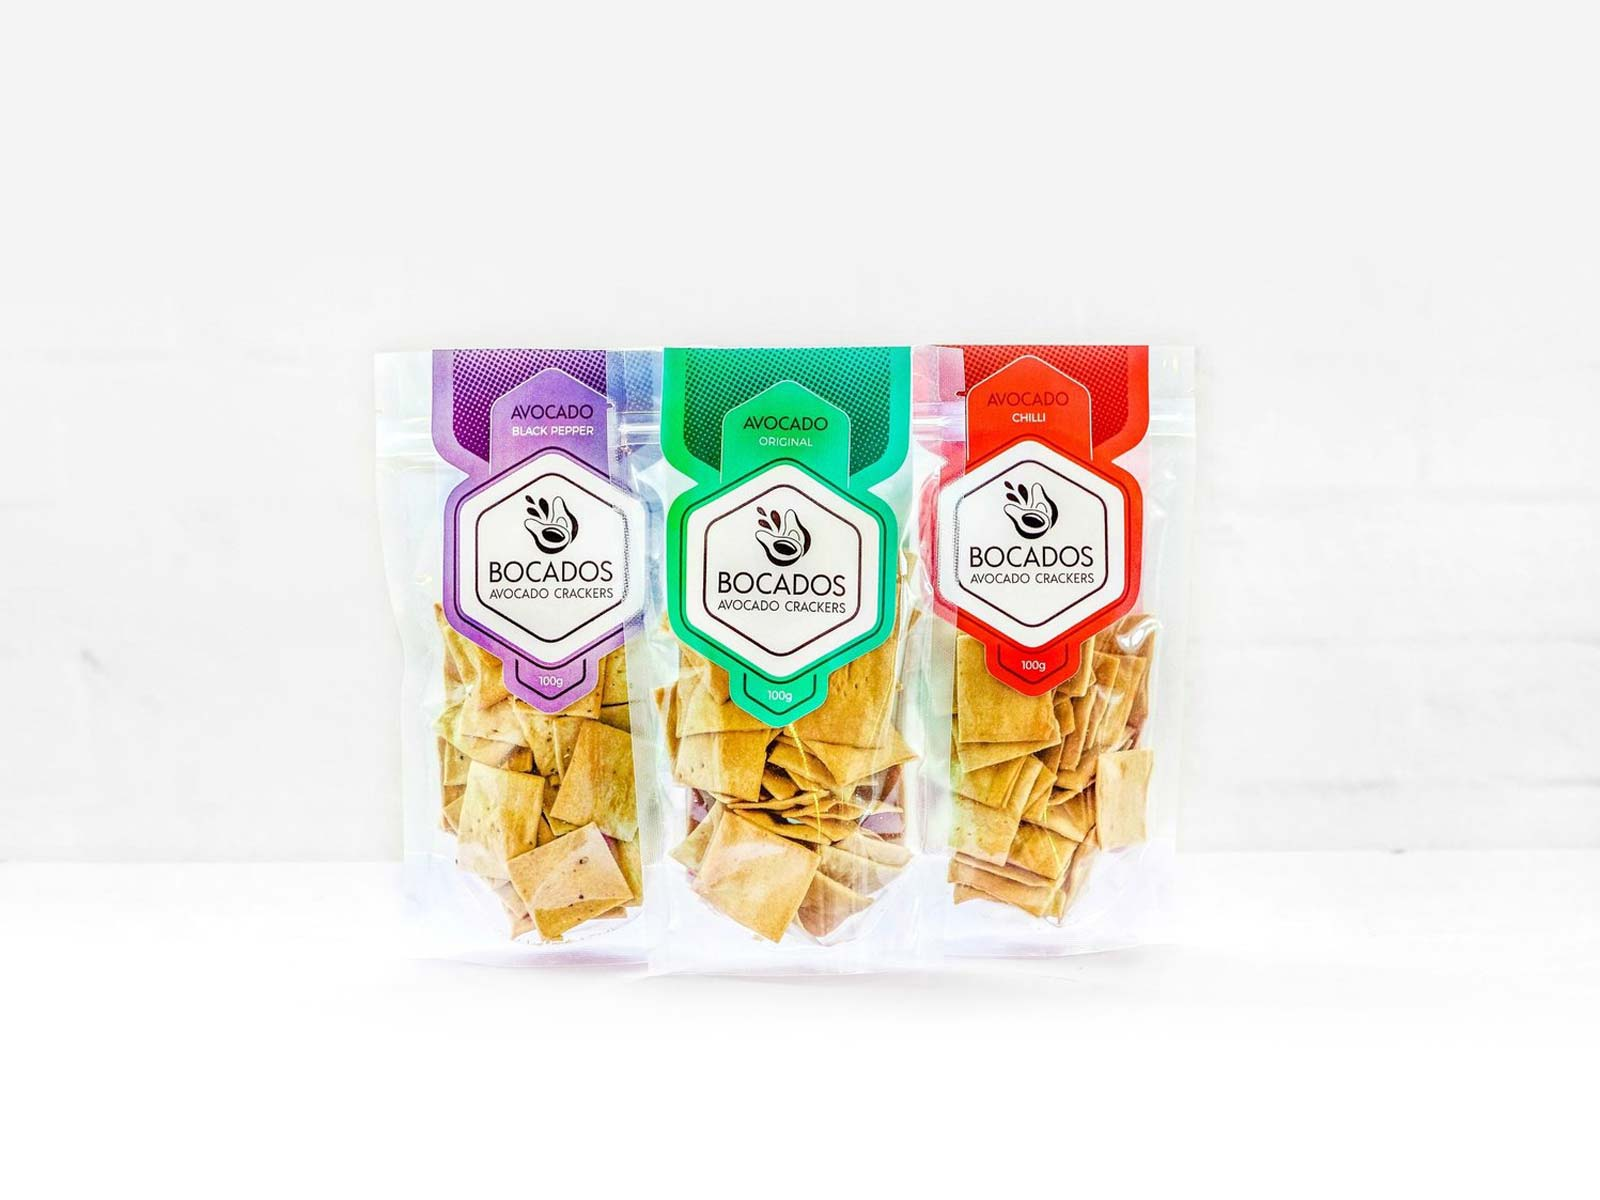 bocados vegan crackers packaging design